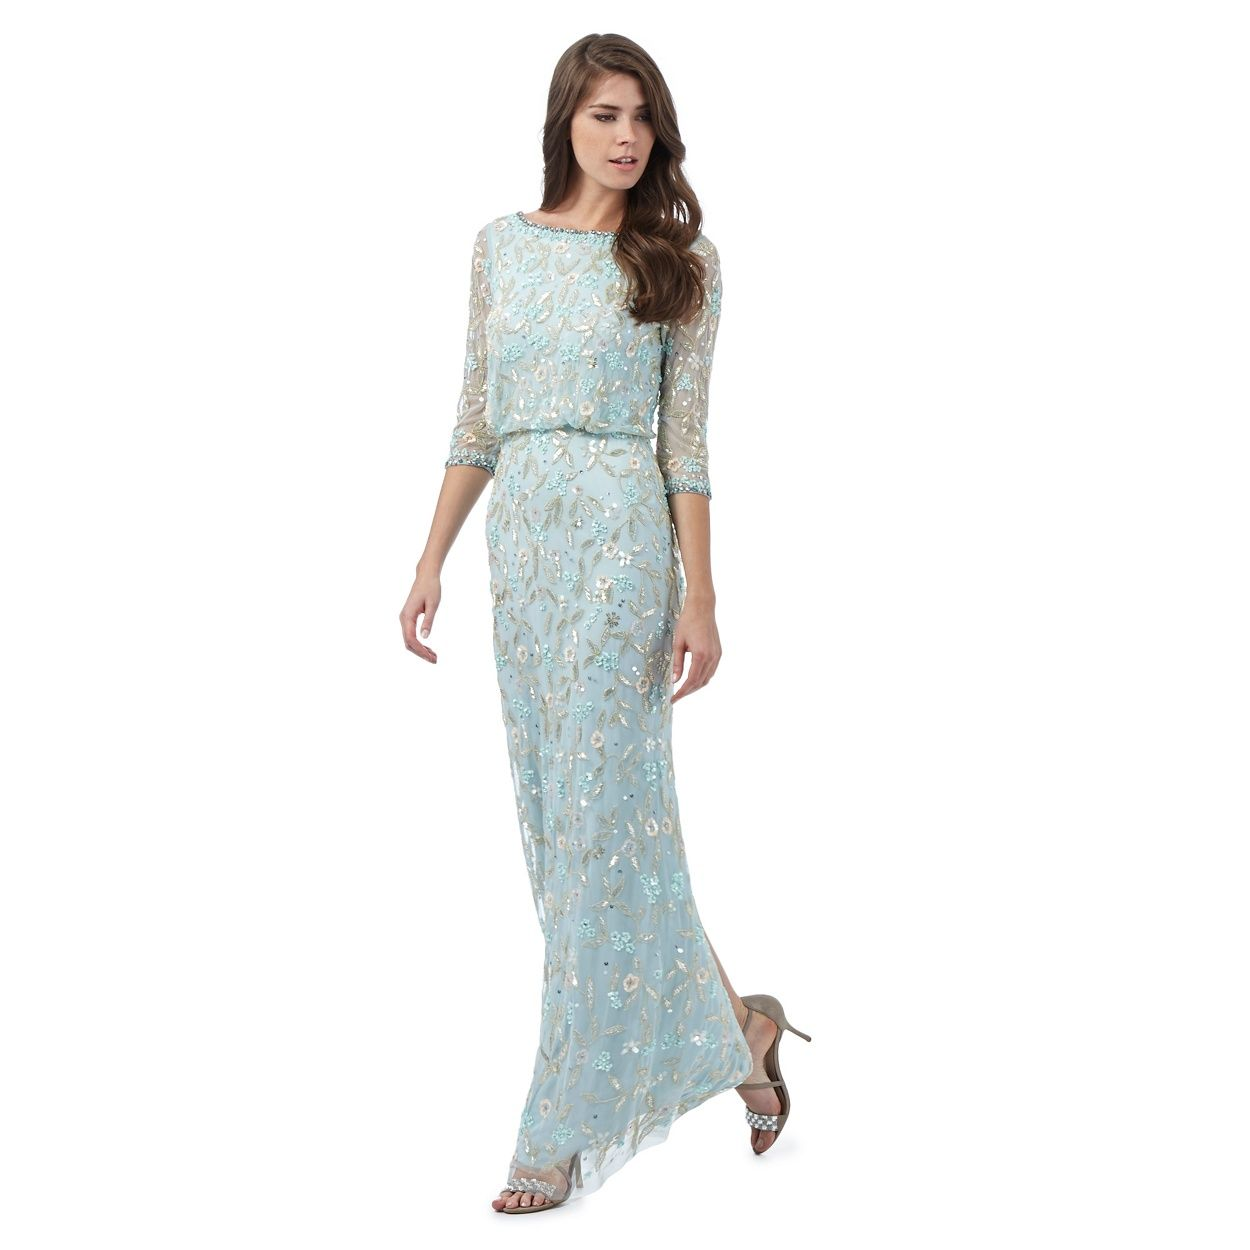 From our exclusive No. 1 by Jenny Packham range, this maxi dress is ...